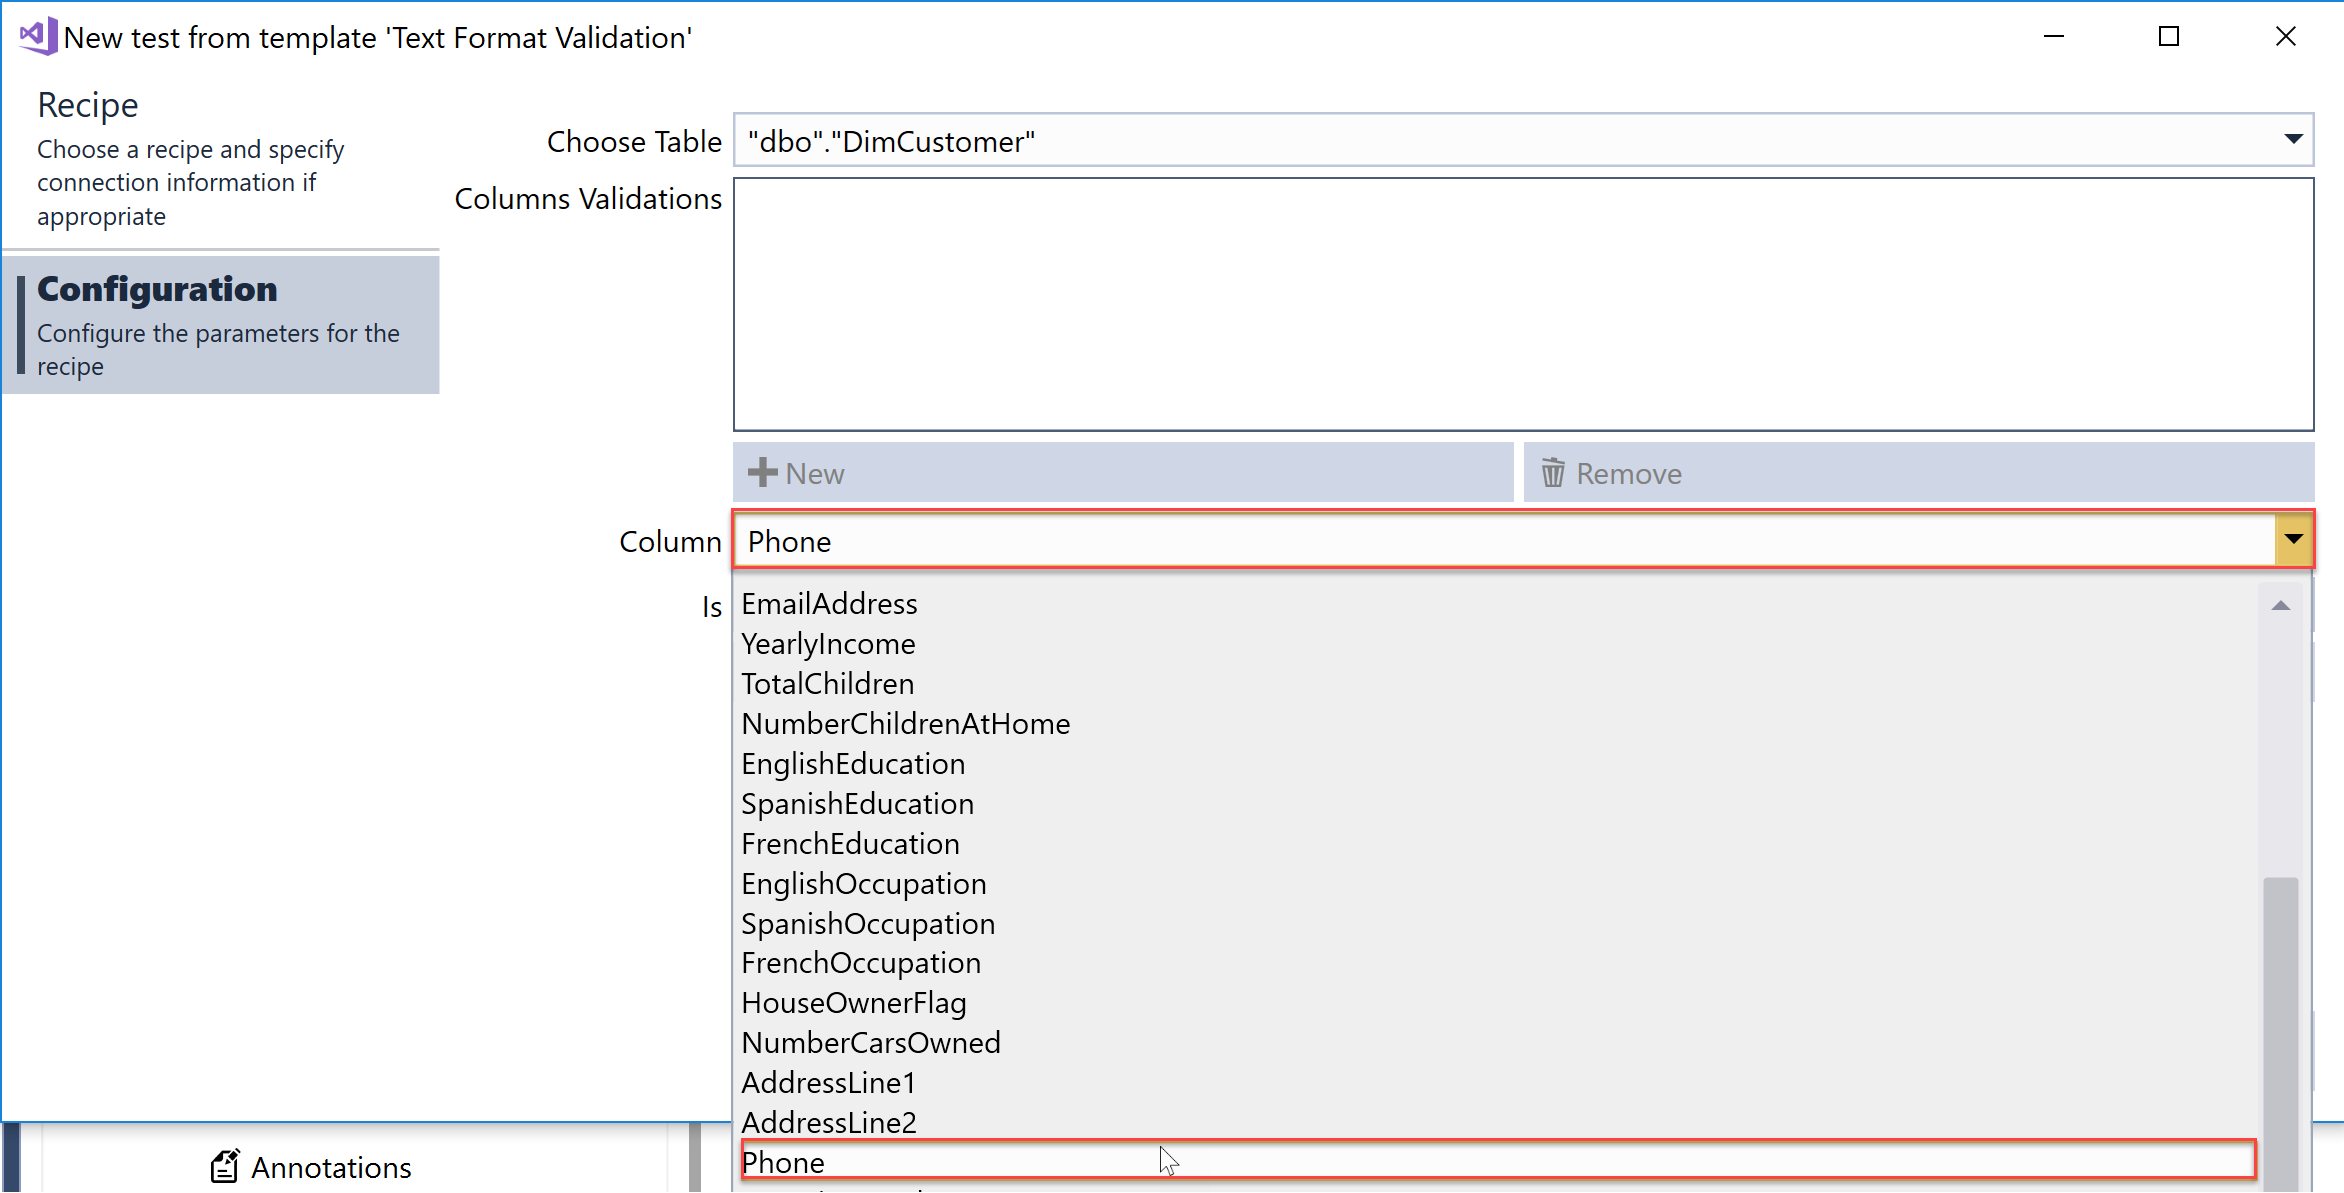 SentryOne Test Text Format Validation recipe Choose column